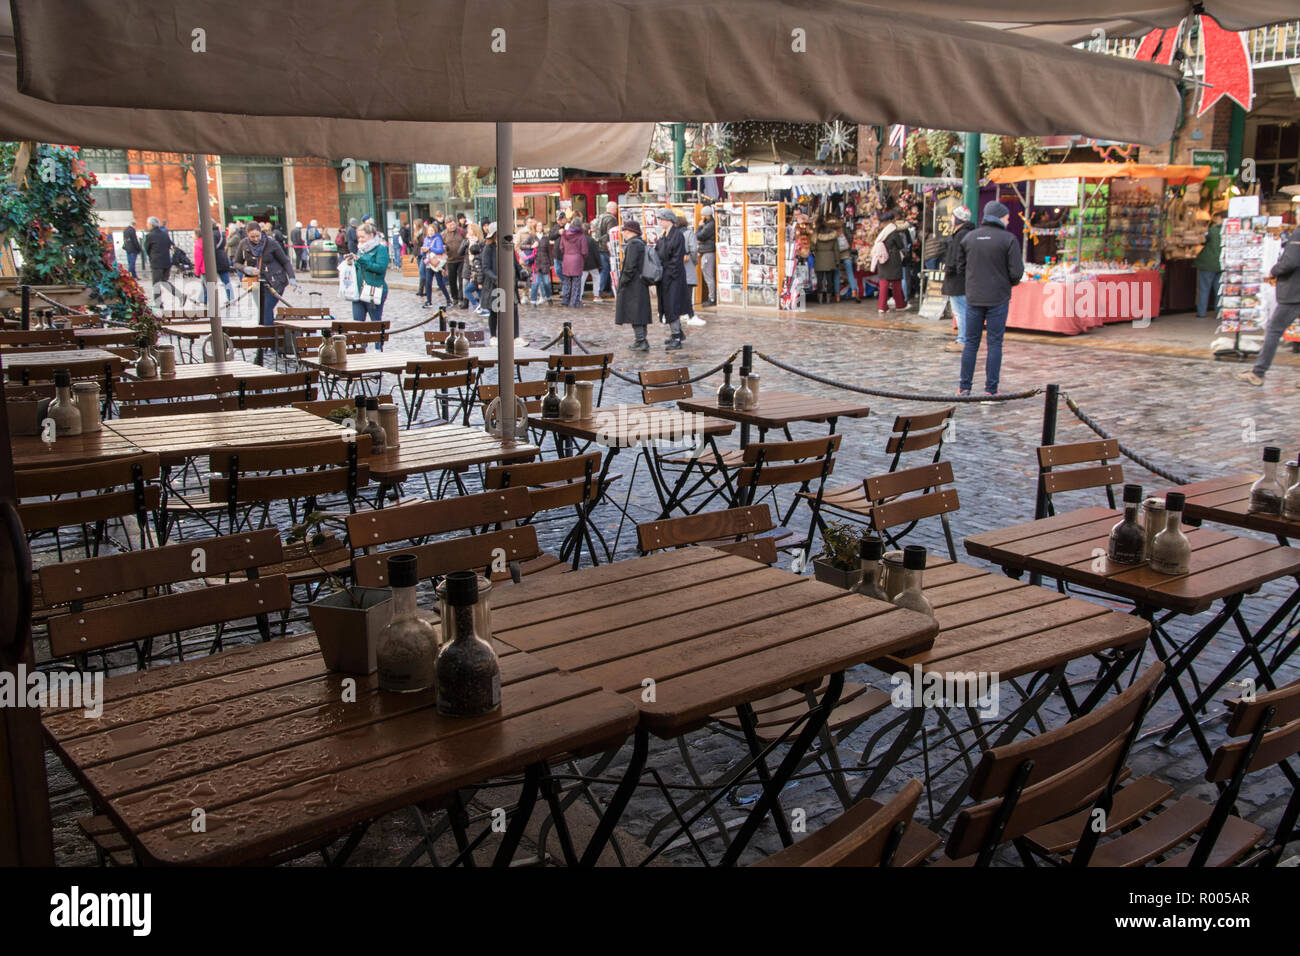 Wet Sunday morning, Covent Garden Market, London. Outdoor restaurant tables after rain. Stock Photo